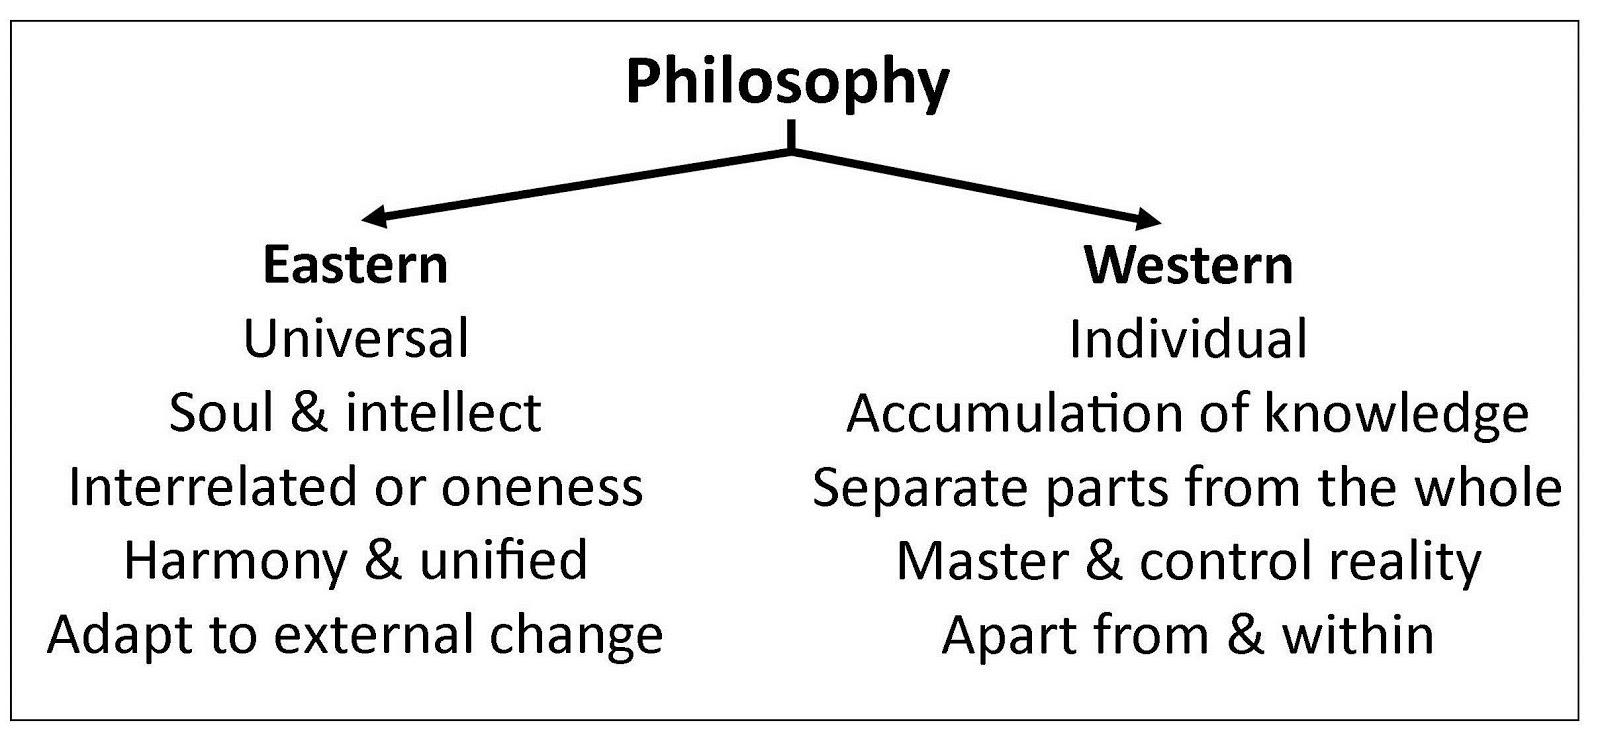 eastern philosophy 2 essay Eastern philosophy matrix and essay part 1 matrix: analyze eastern philosophy by completing the following matrix provide a definition of the branch of philosophy as given in a philosophical source (the readings, supplemental materials, or outside academic sources) and list a minimum of three historical developments, theories, key.